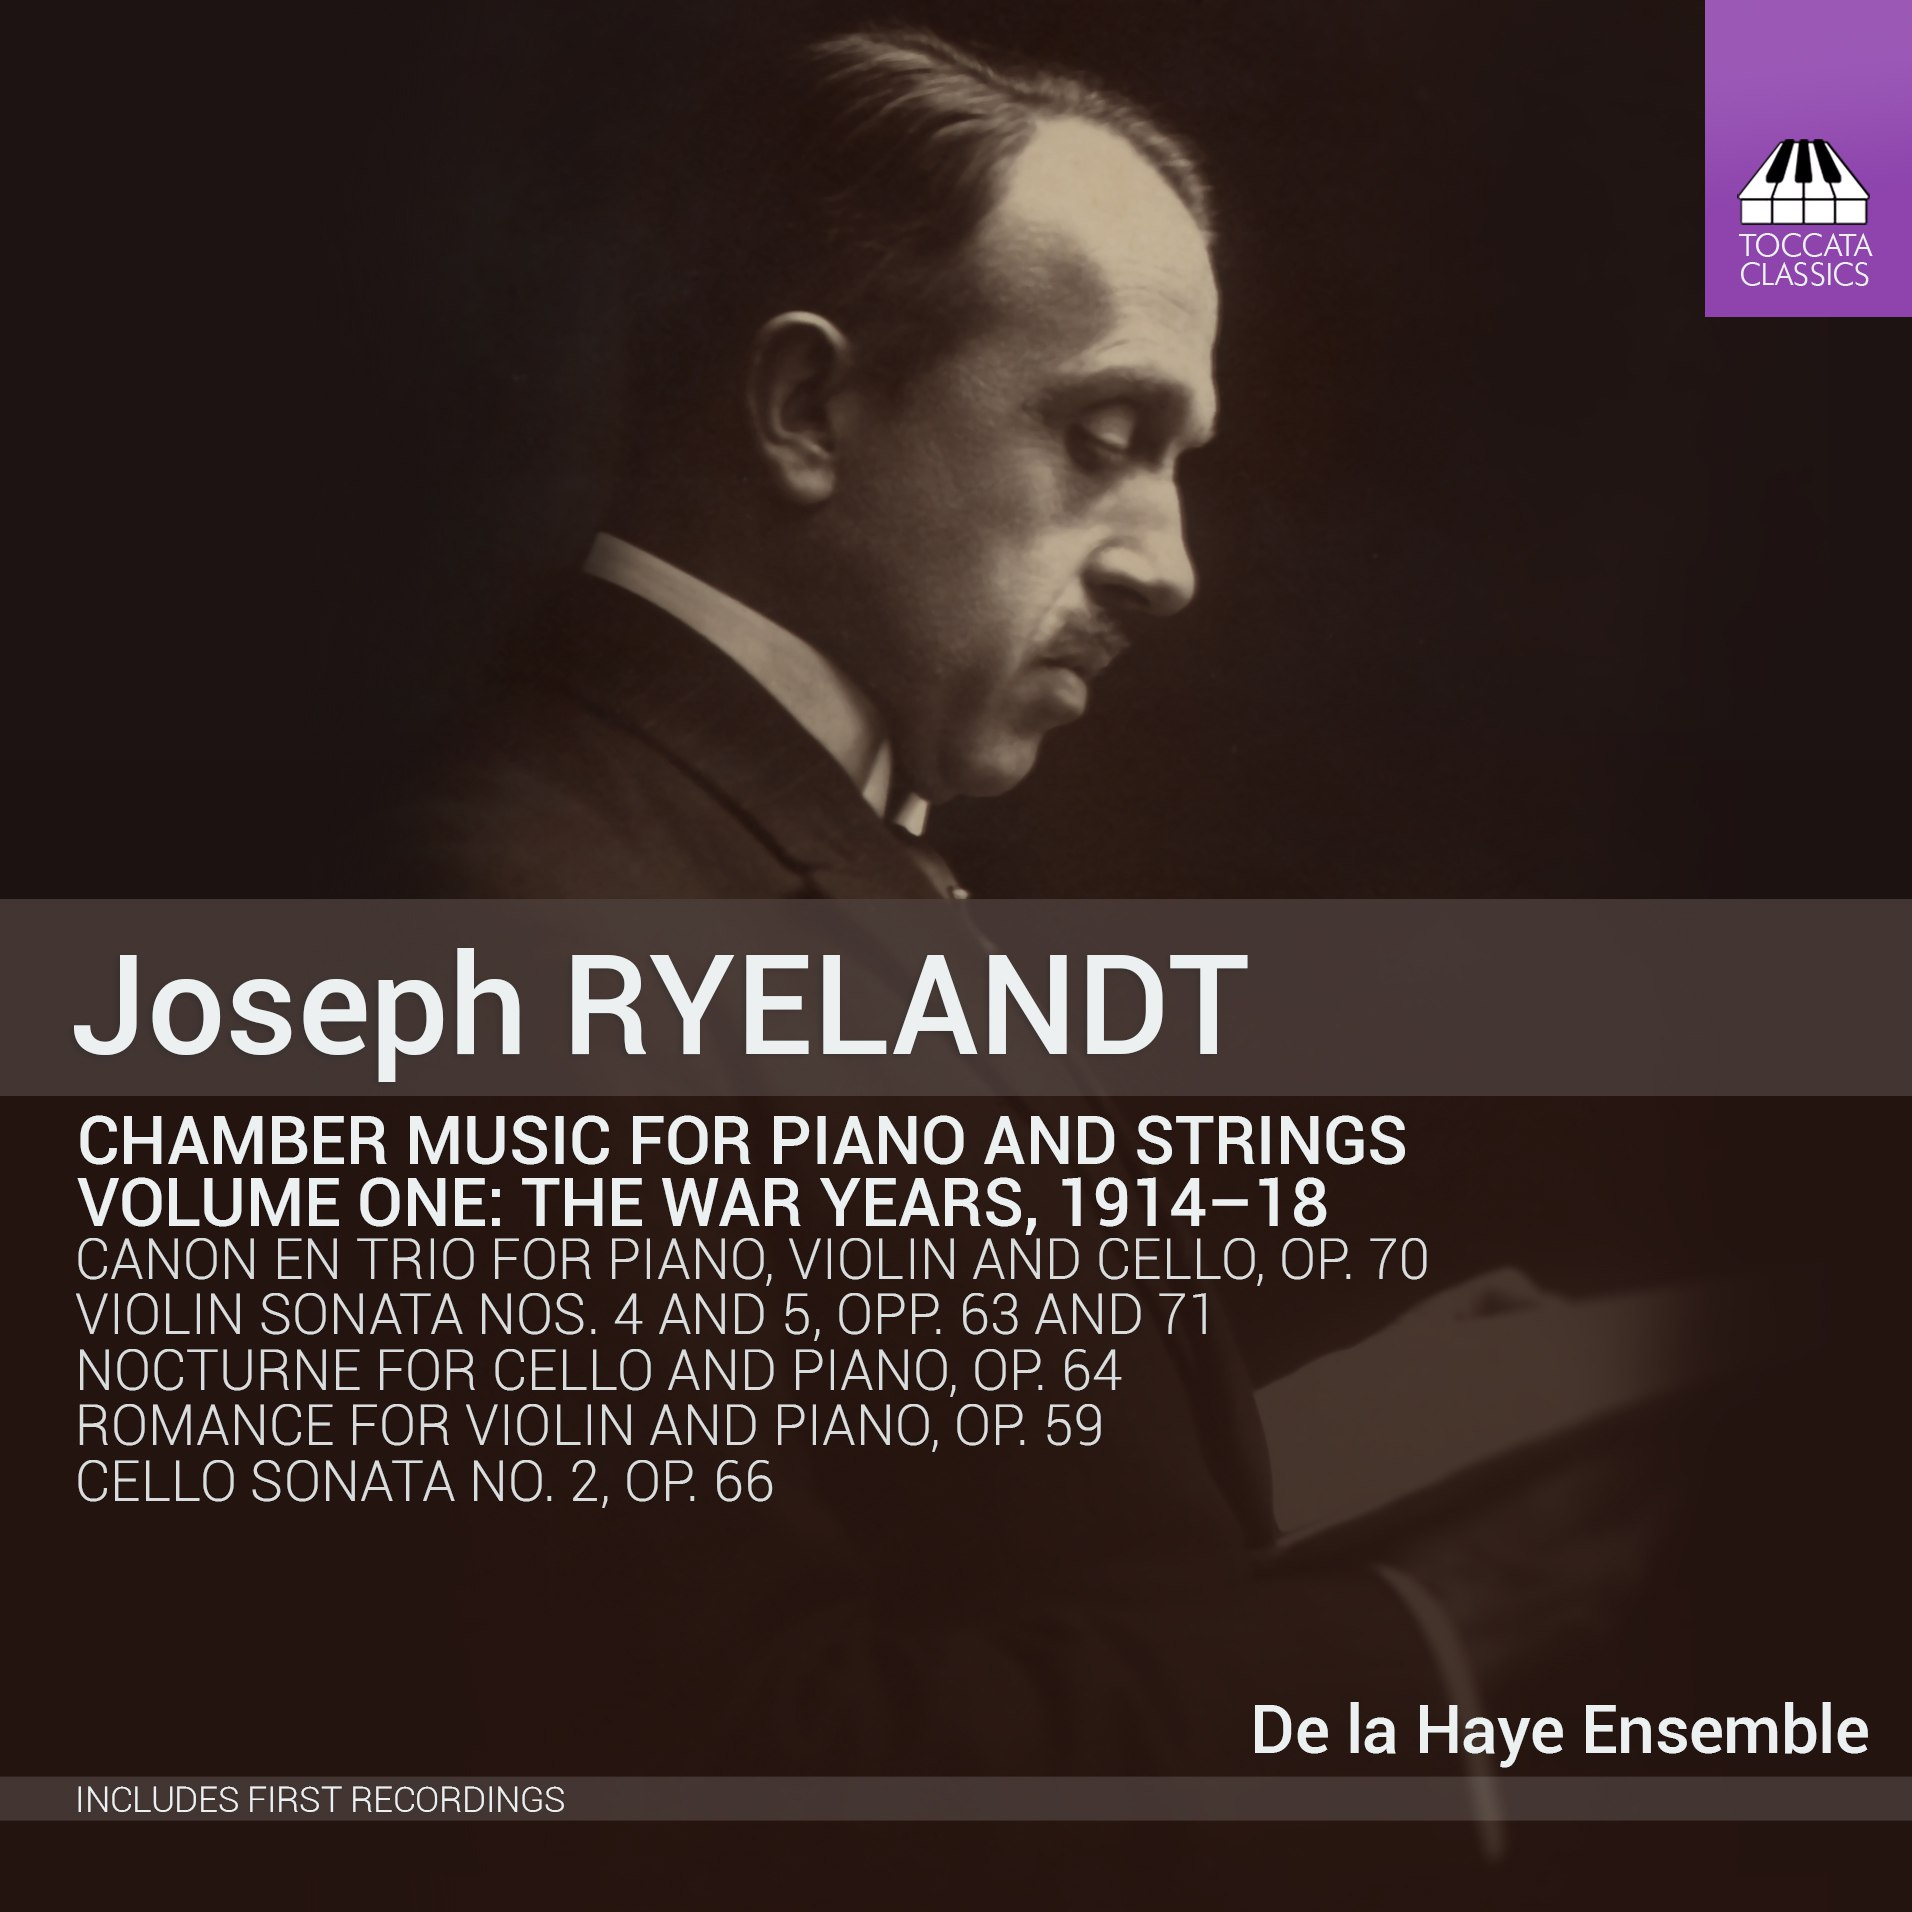 Joseph Ryelandt: Chamber Music for Piano and Strings Volume One: The War Years, 1914-18